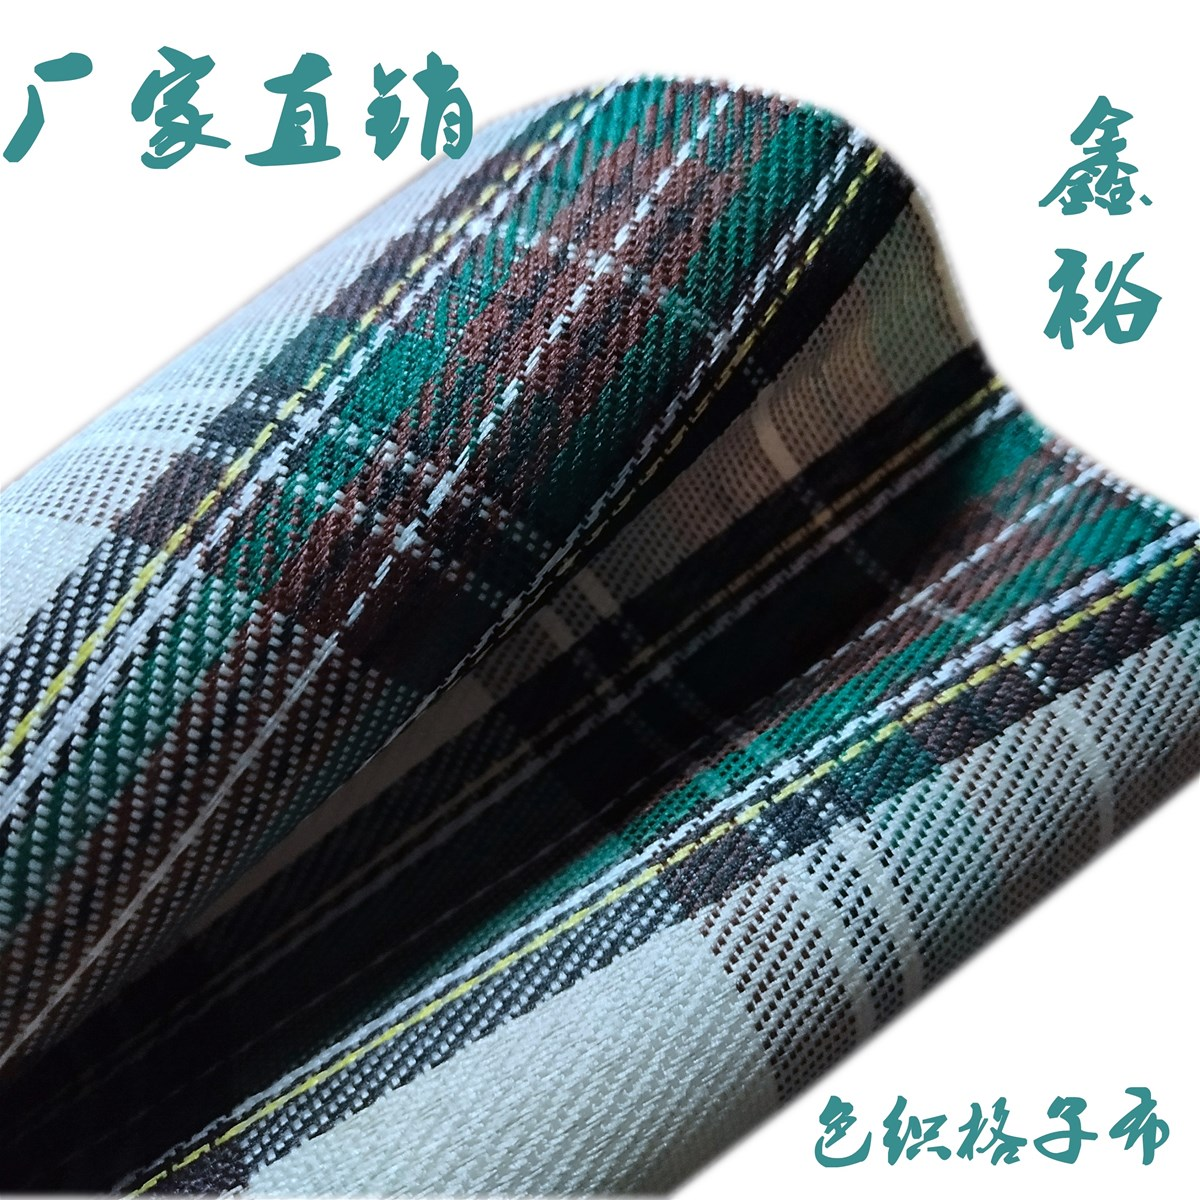 POPULAR PUPVC COATED YARN DYED CHECK OXFORD FABRIC FOR BAGSLUGGAGES